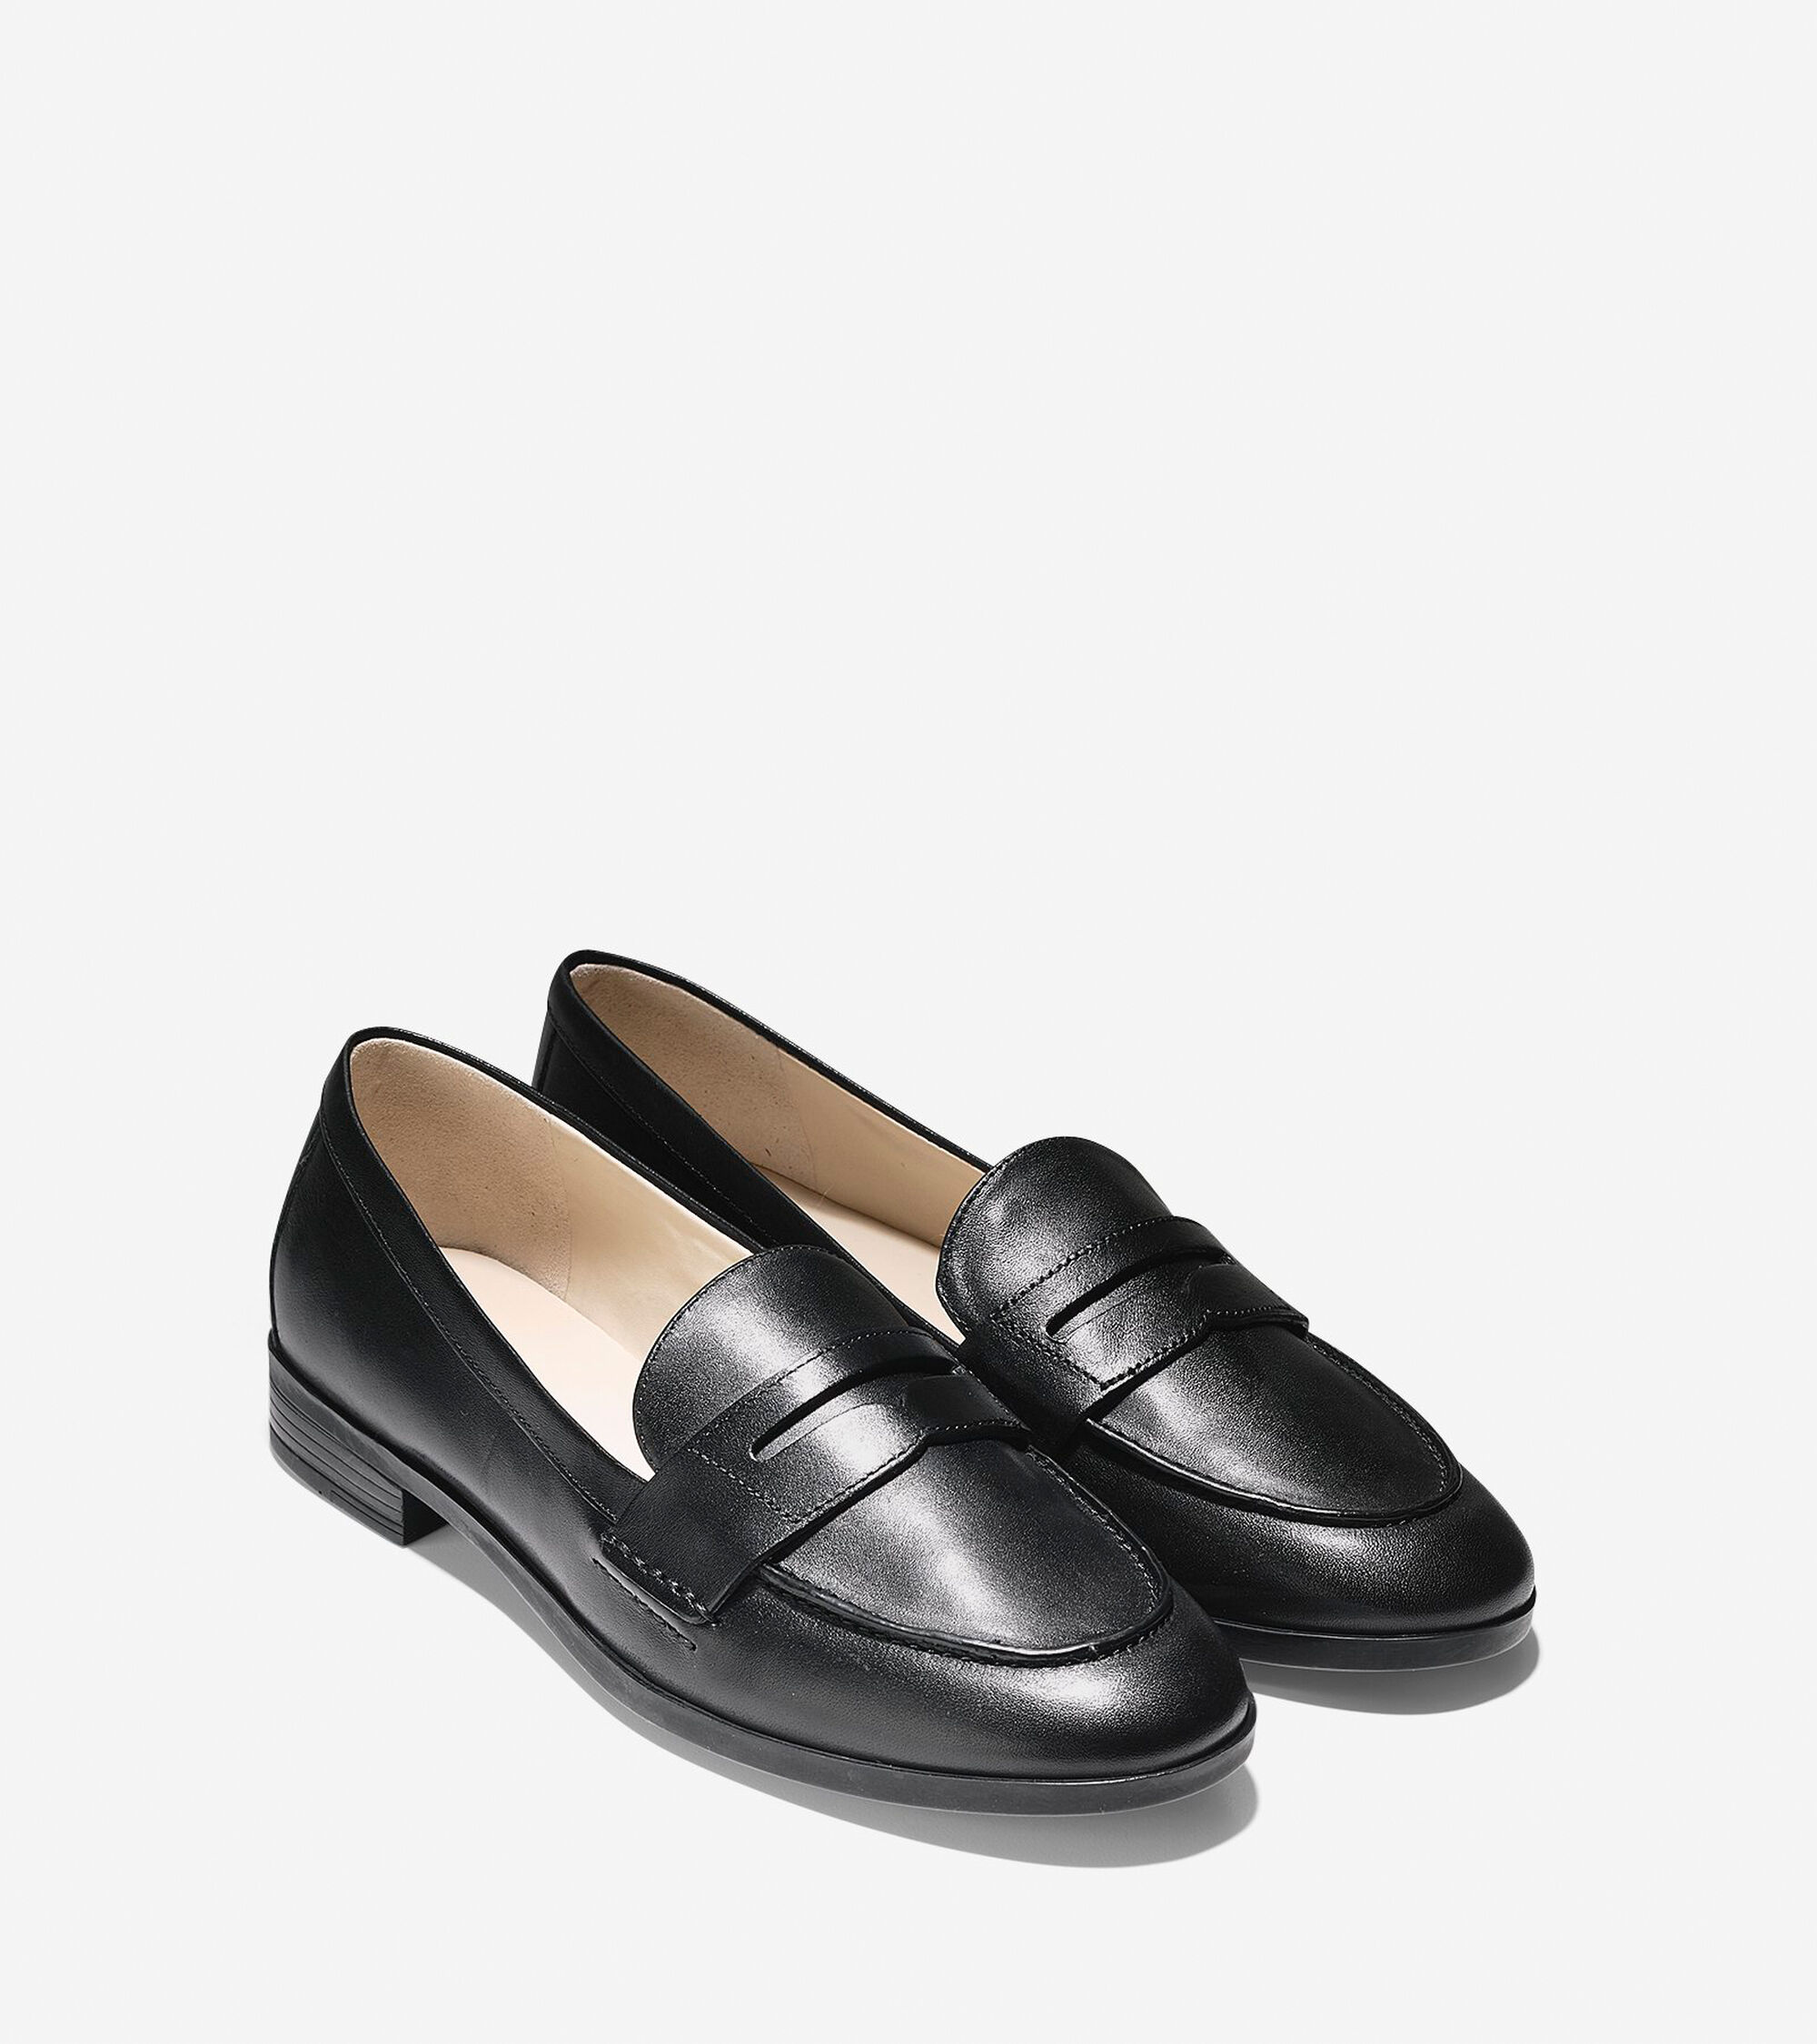 b074082066c Women's Pinch Grand Penny Loafers in Black | Cole Haan